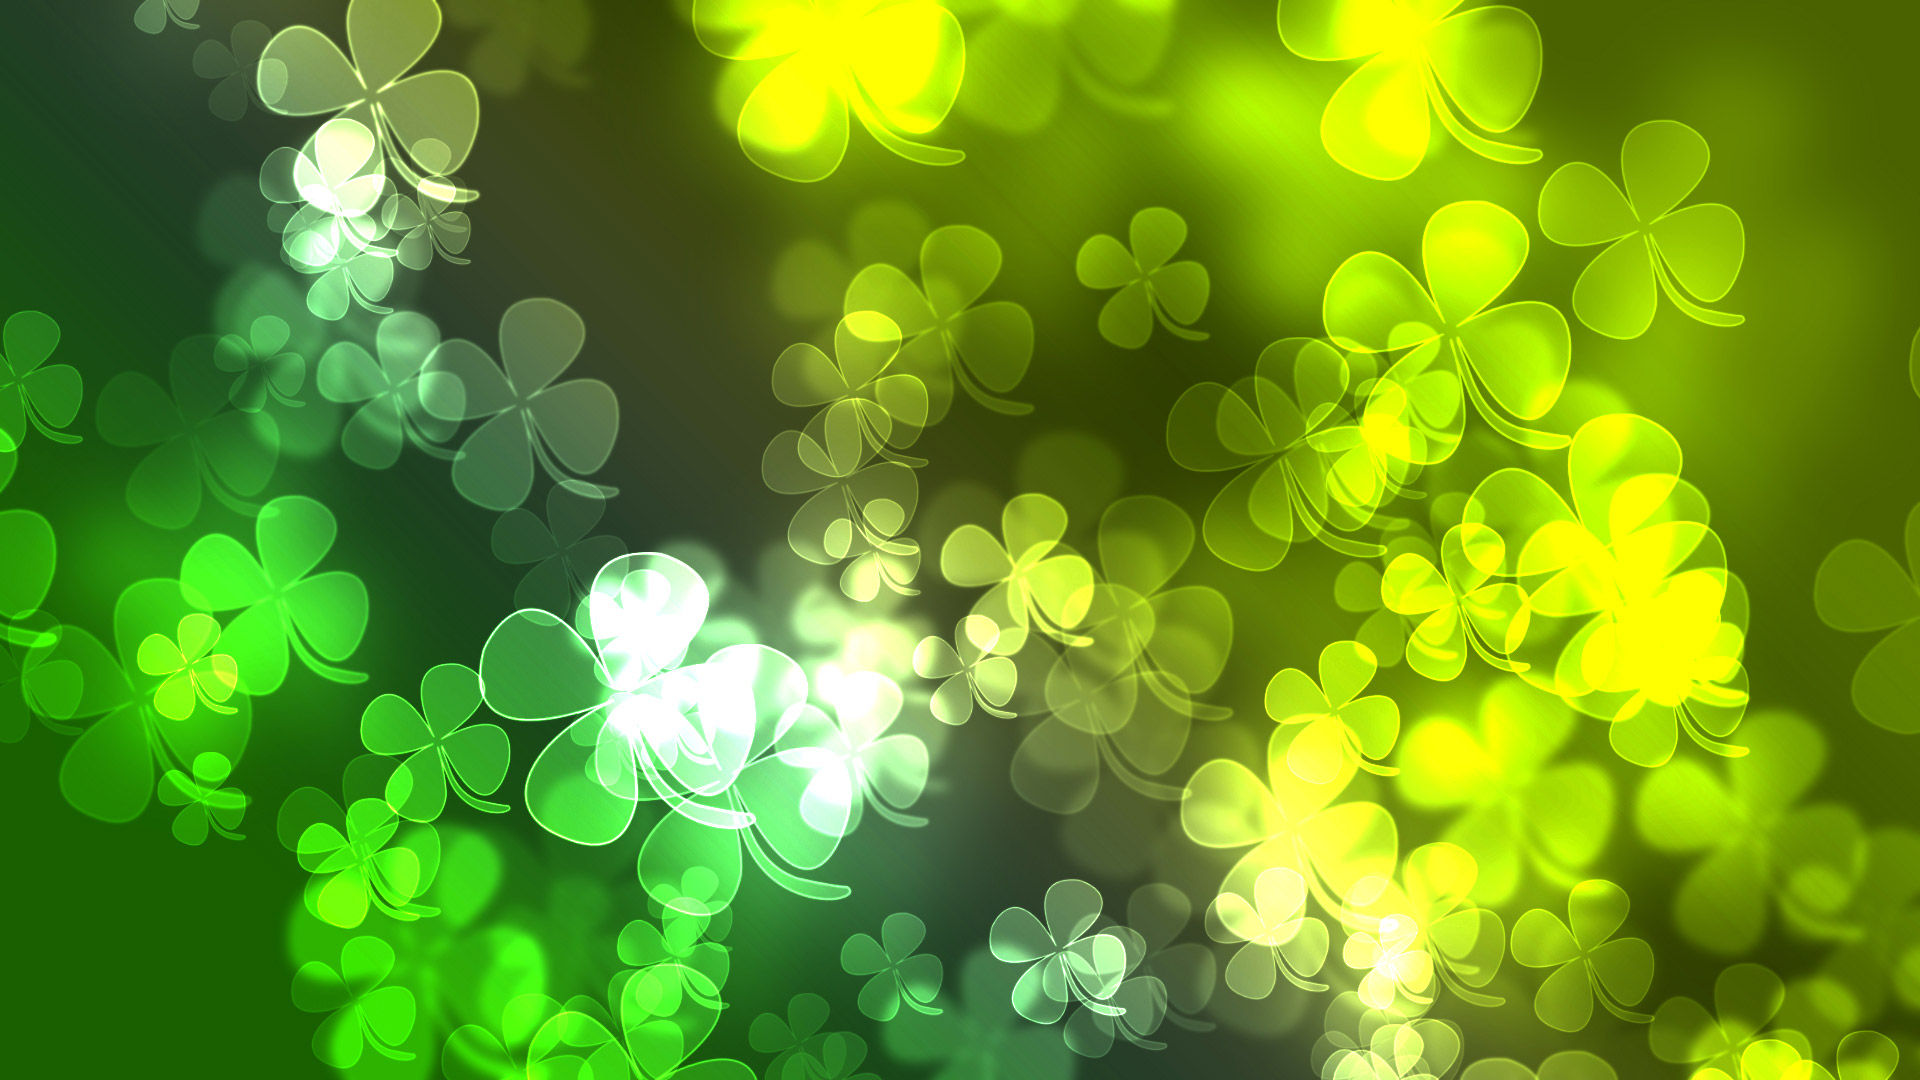 23 St Patricks Day Themed Wallpapers For Your Android